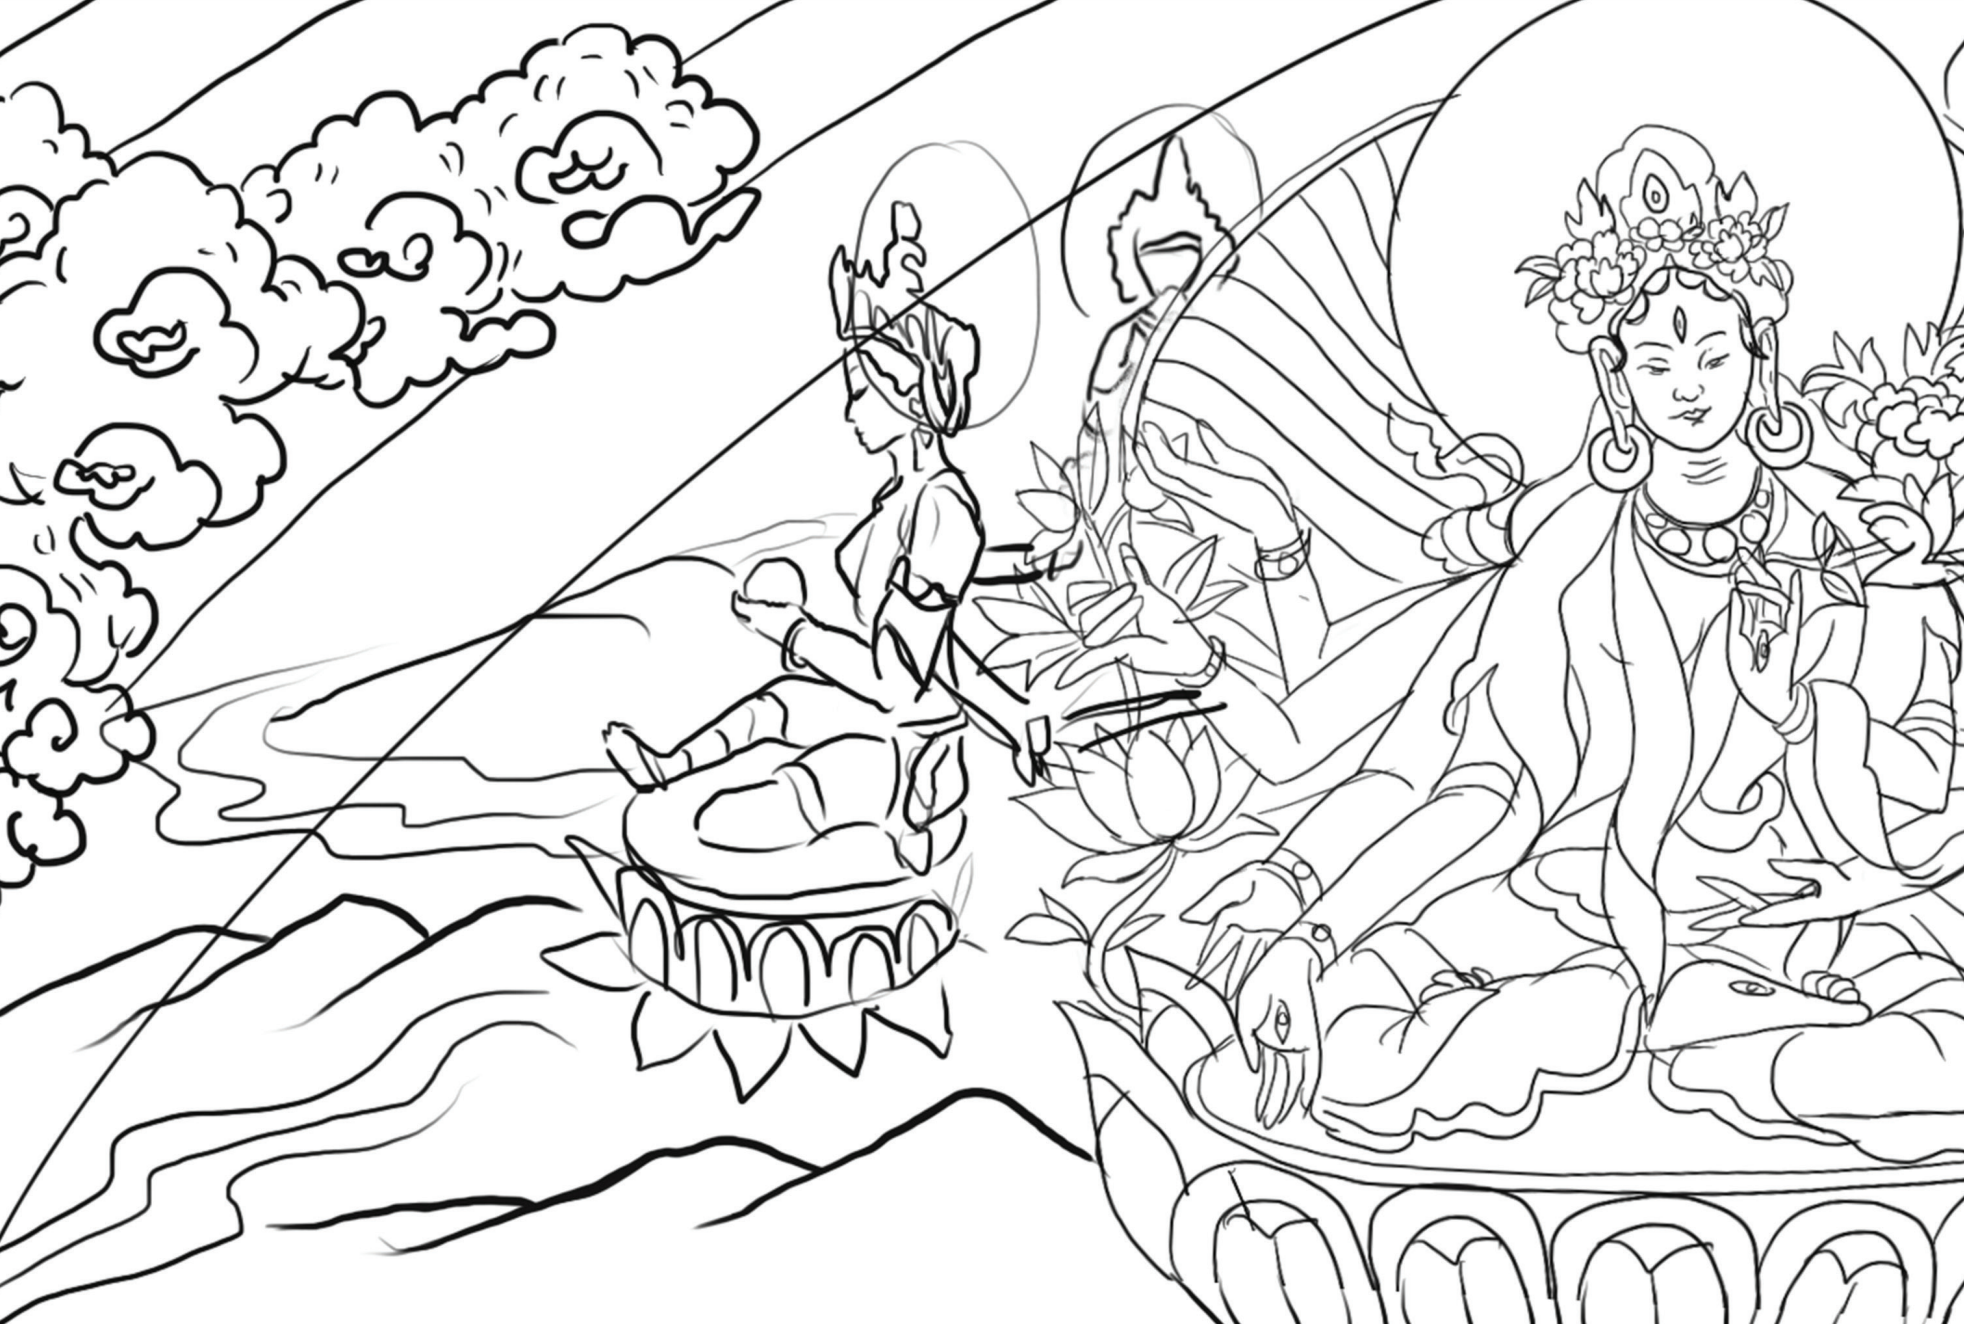 Free Downloadable Coloring Pages from Asian Art Museum